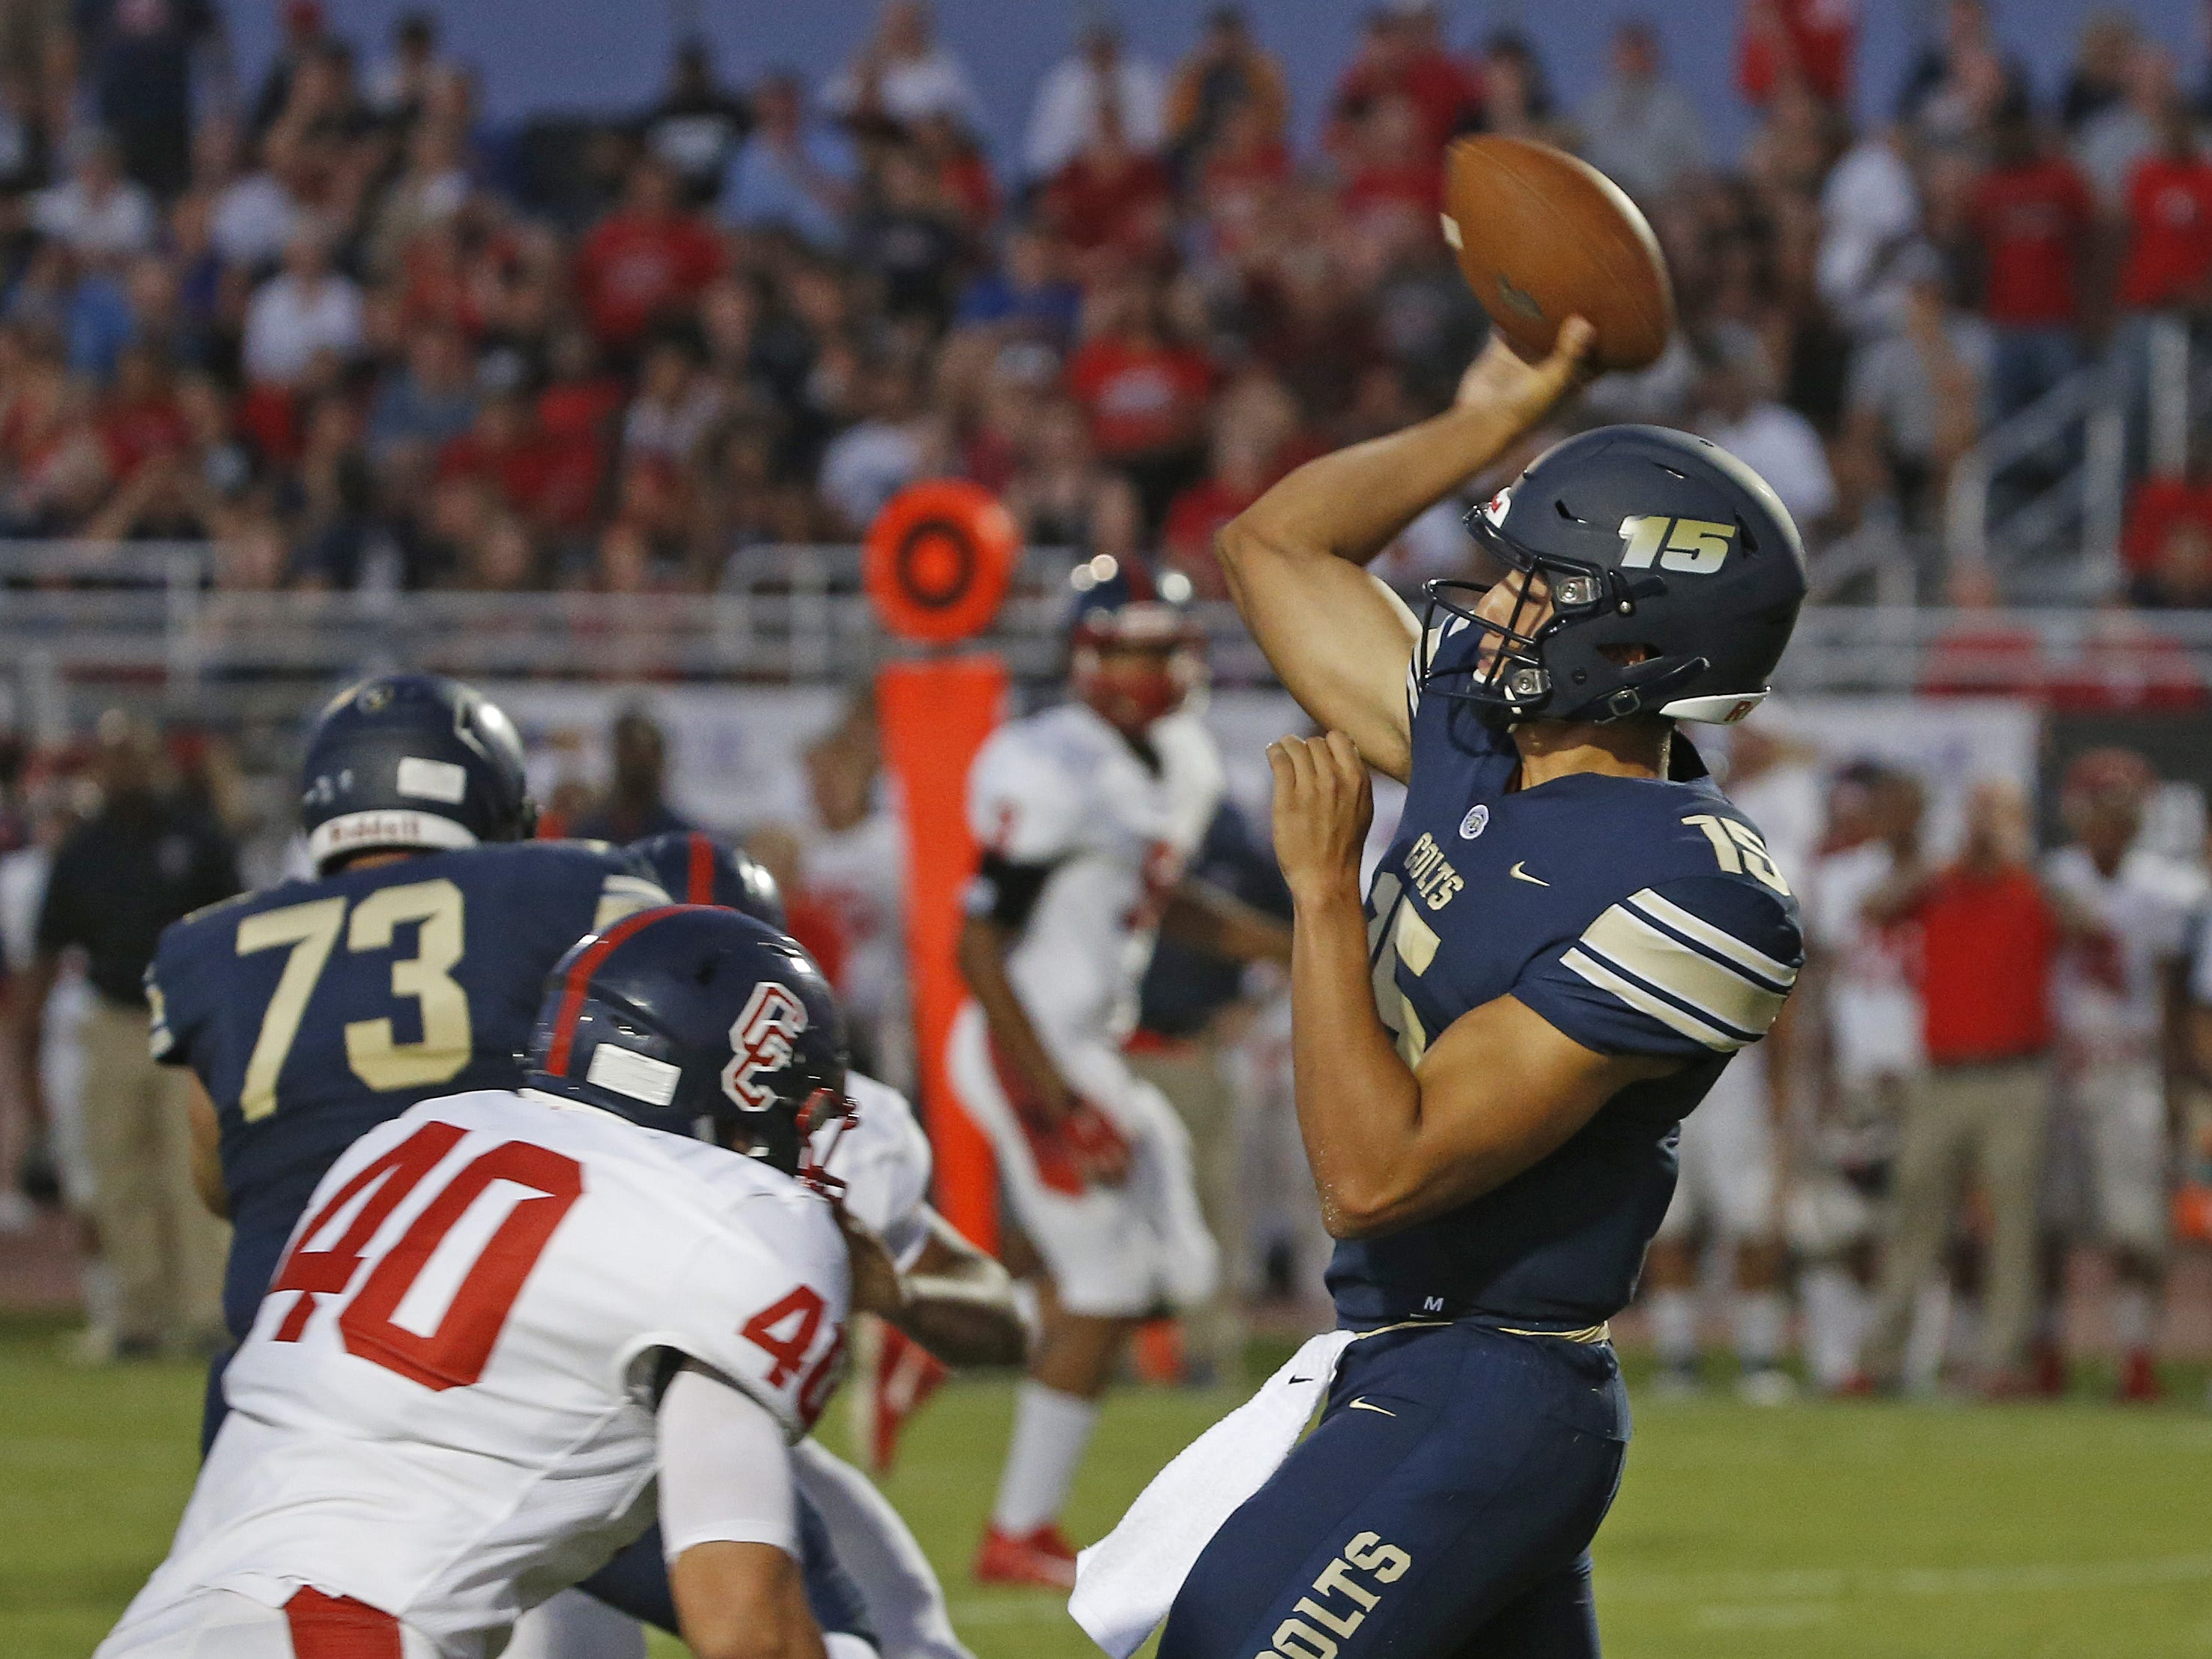 Casteel's Gunner Cruz (15) throws a pass against Centennial during the first half at Casteel High School in Queen Creek, Ariz. on Aug. 17, 2018.